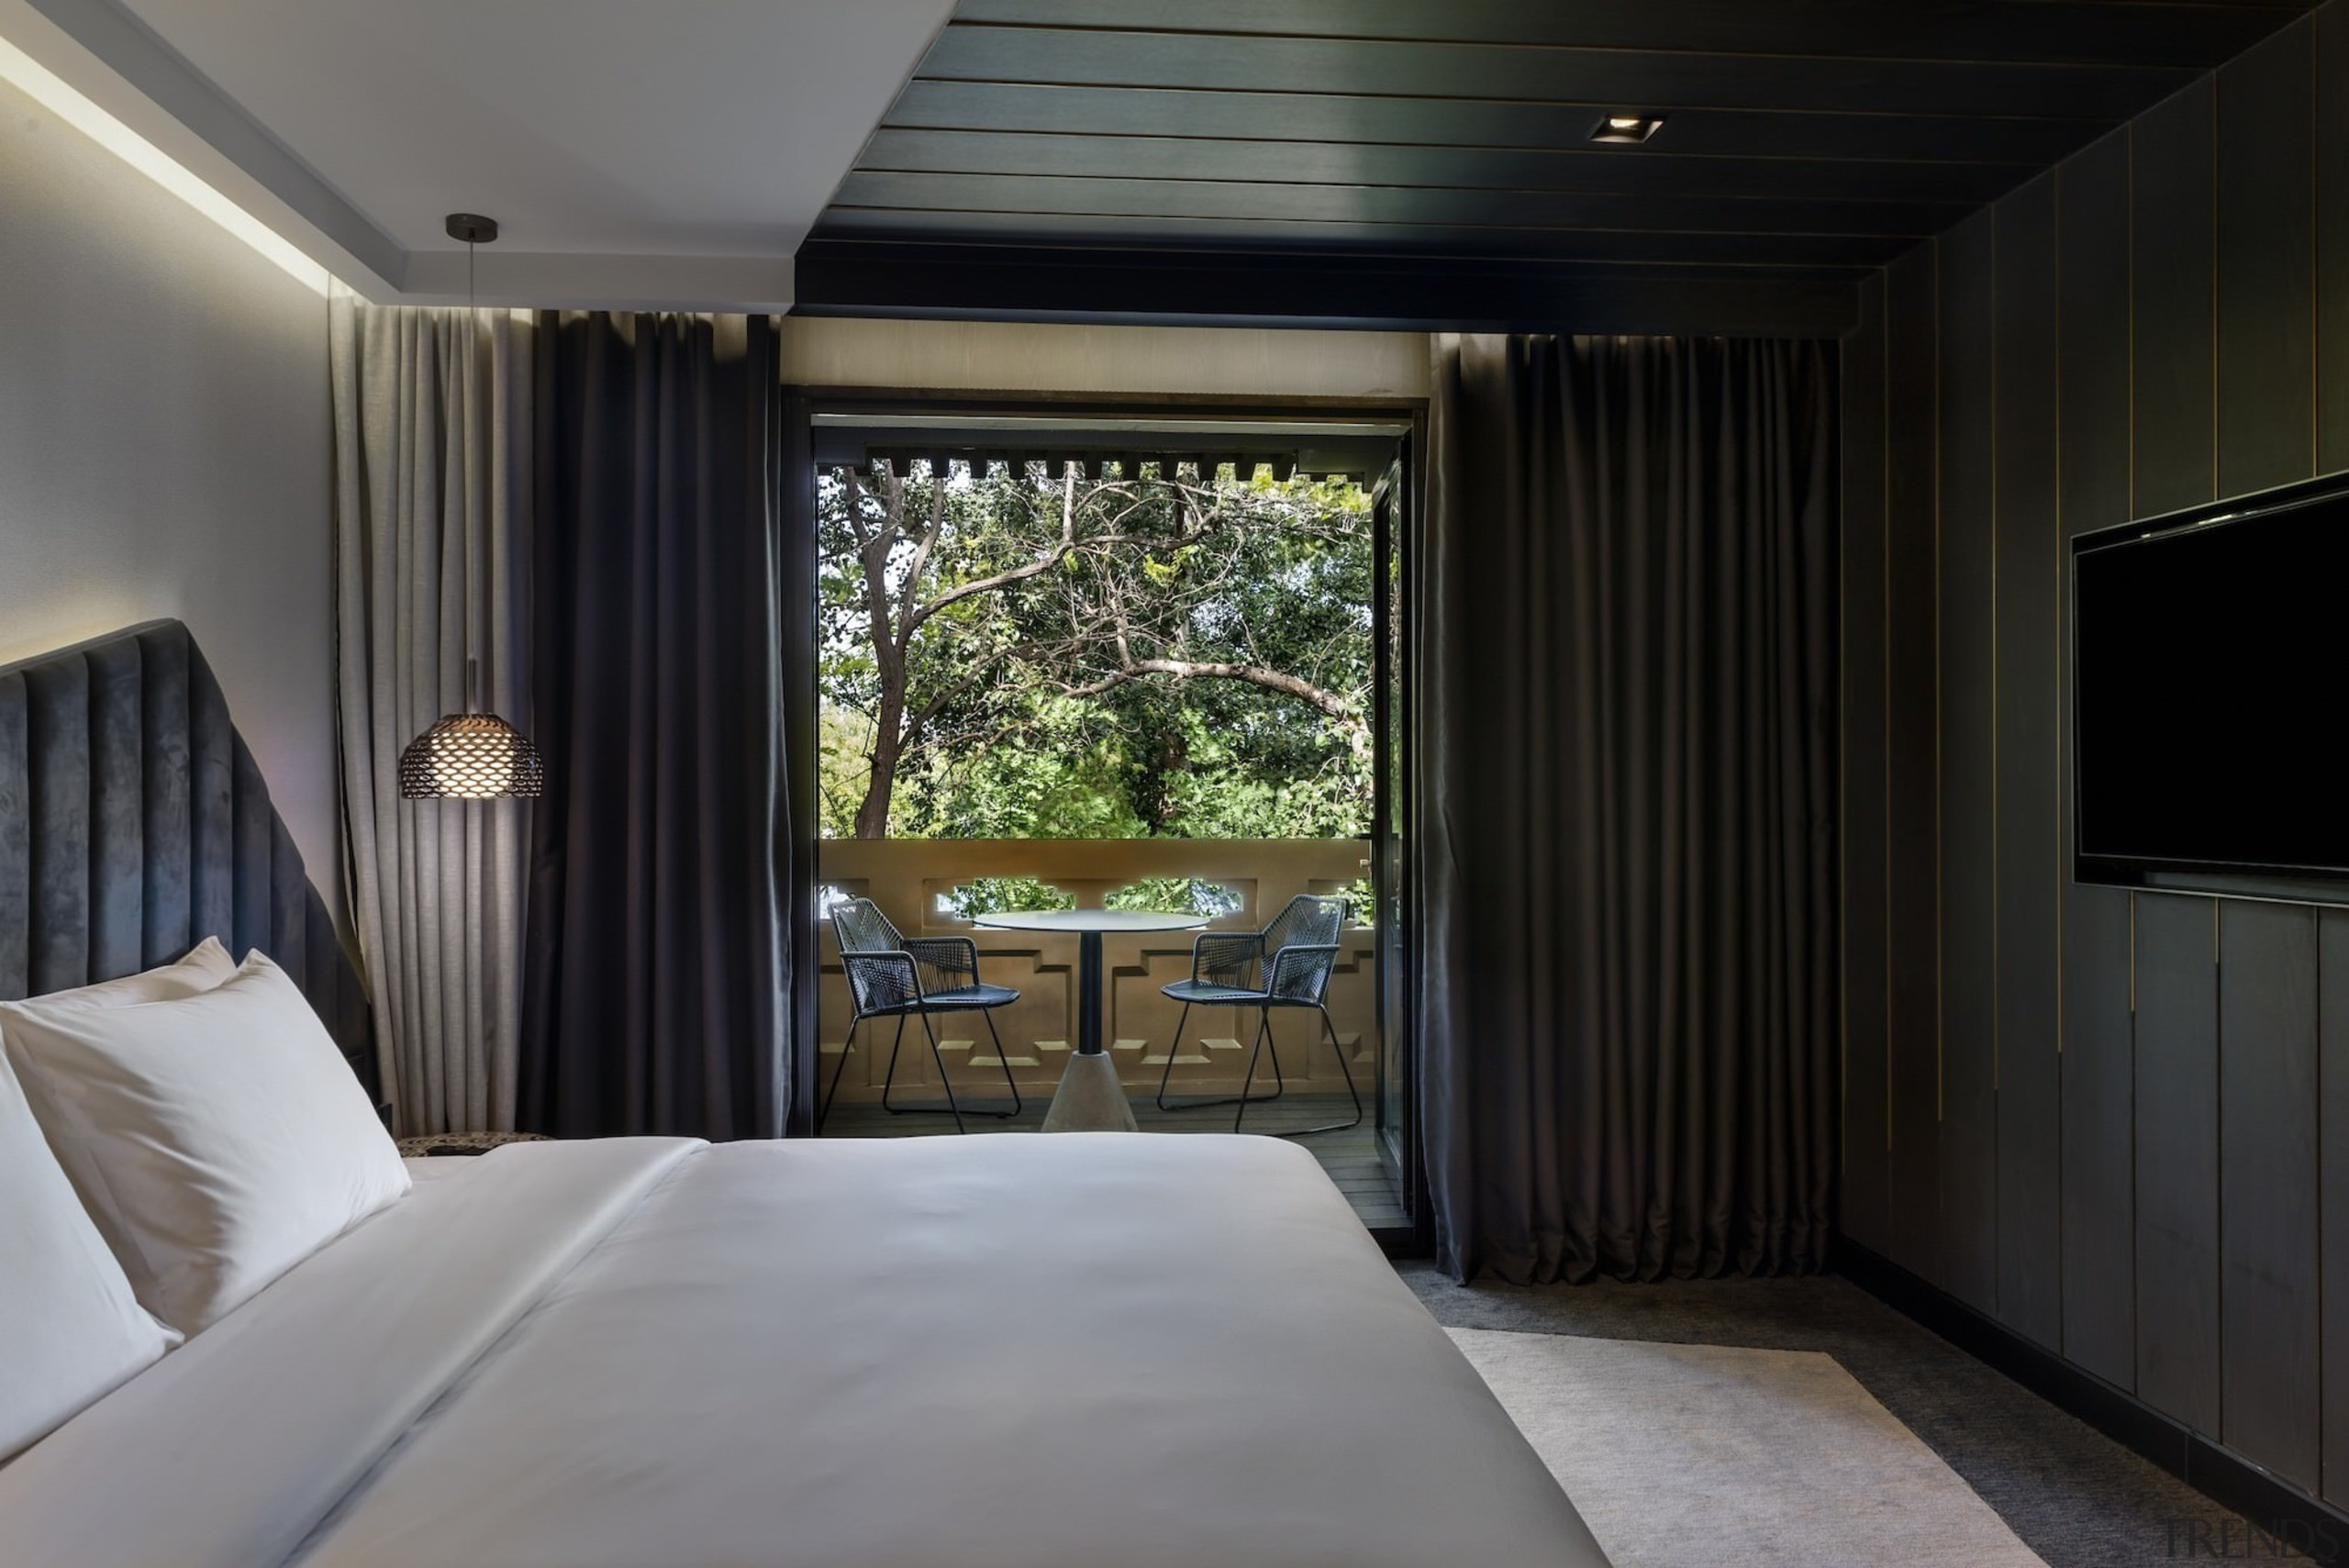 One of the more tame rooms, this space architecture, bedroom, ceiling, estate, home, house, interior design, real estate, room, suite, window, black, gray